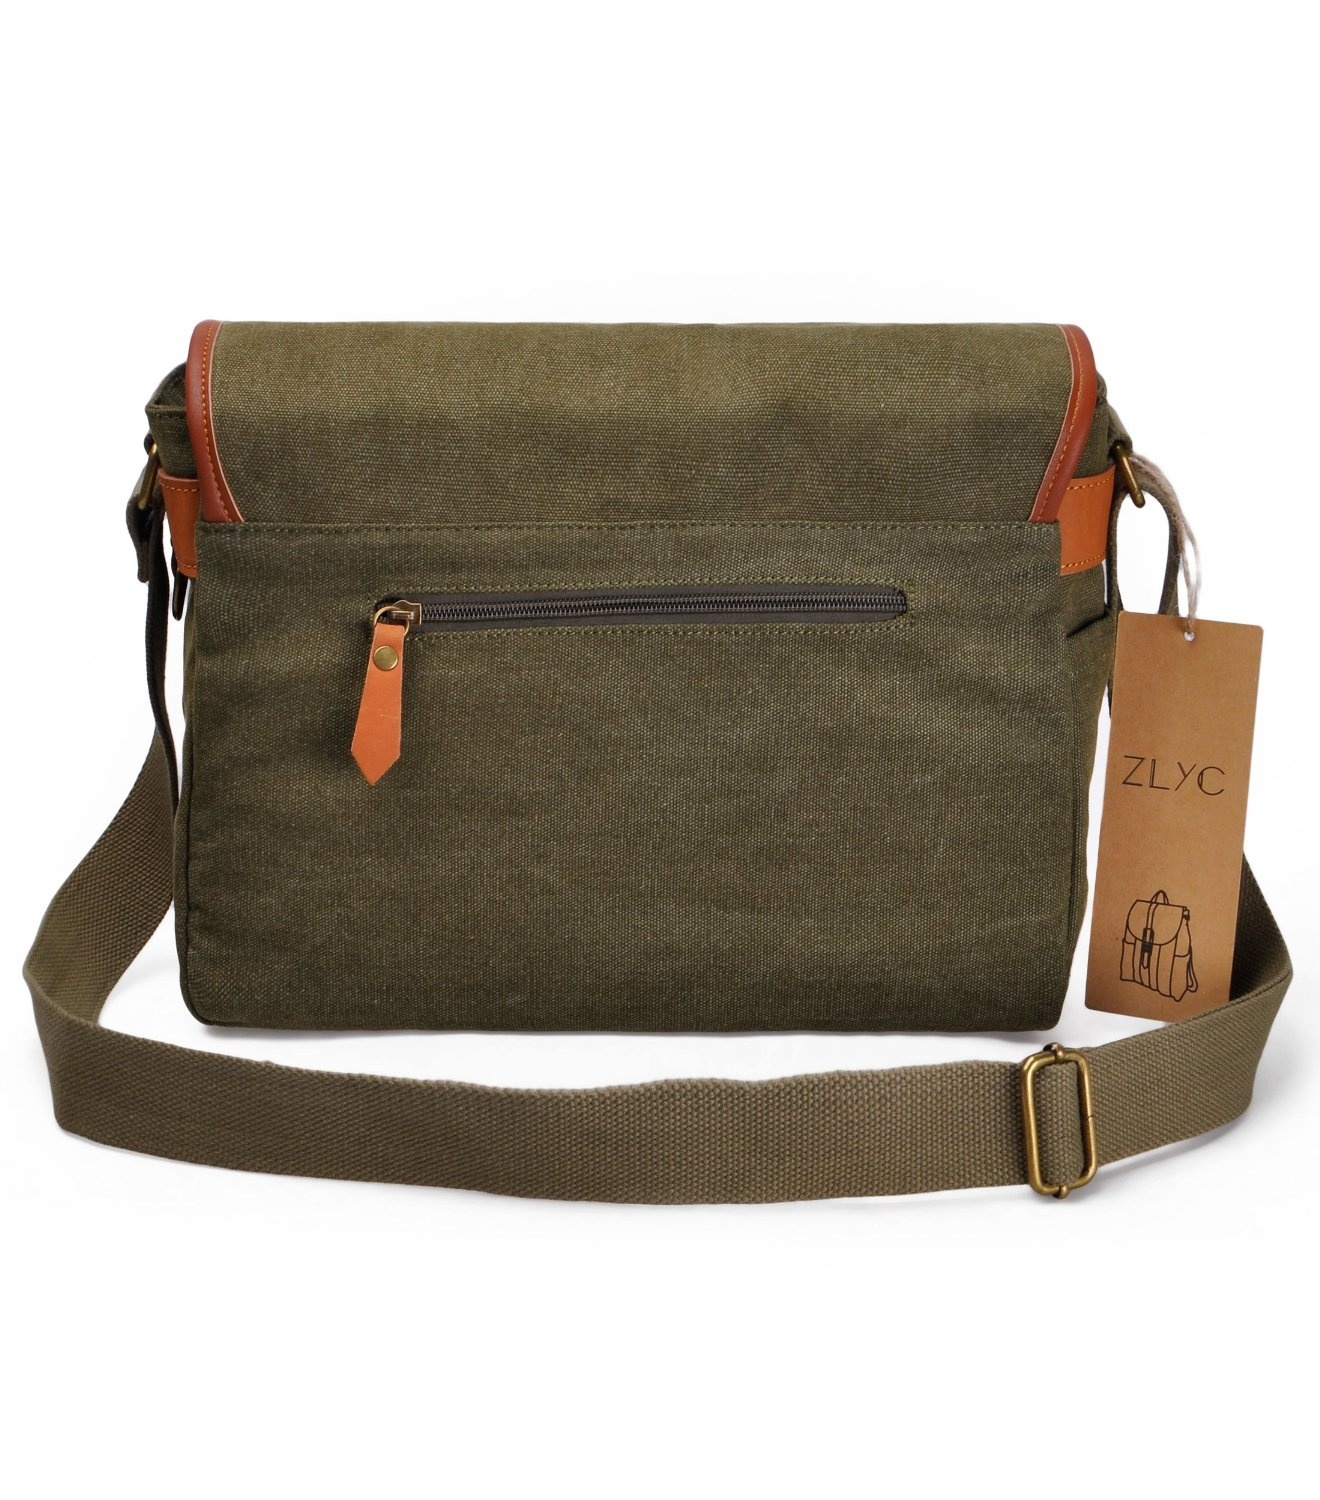 Canvas Camera Bag Electronics  Buy Online from Fishpond.com.au 1f62e1d1f8db8